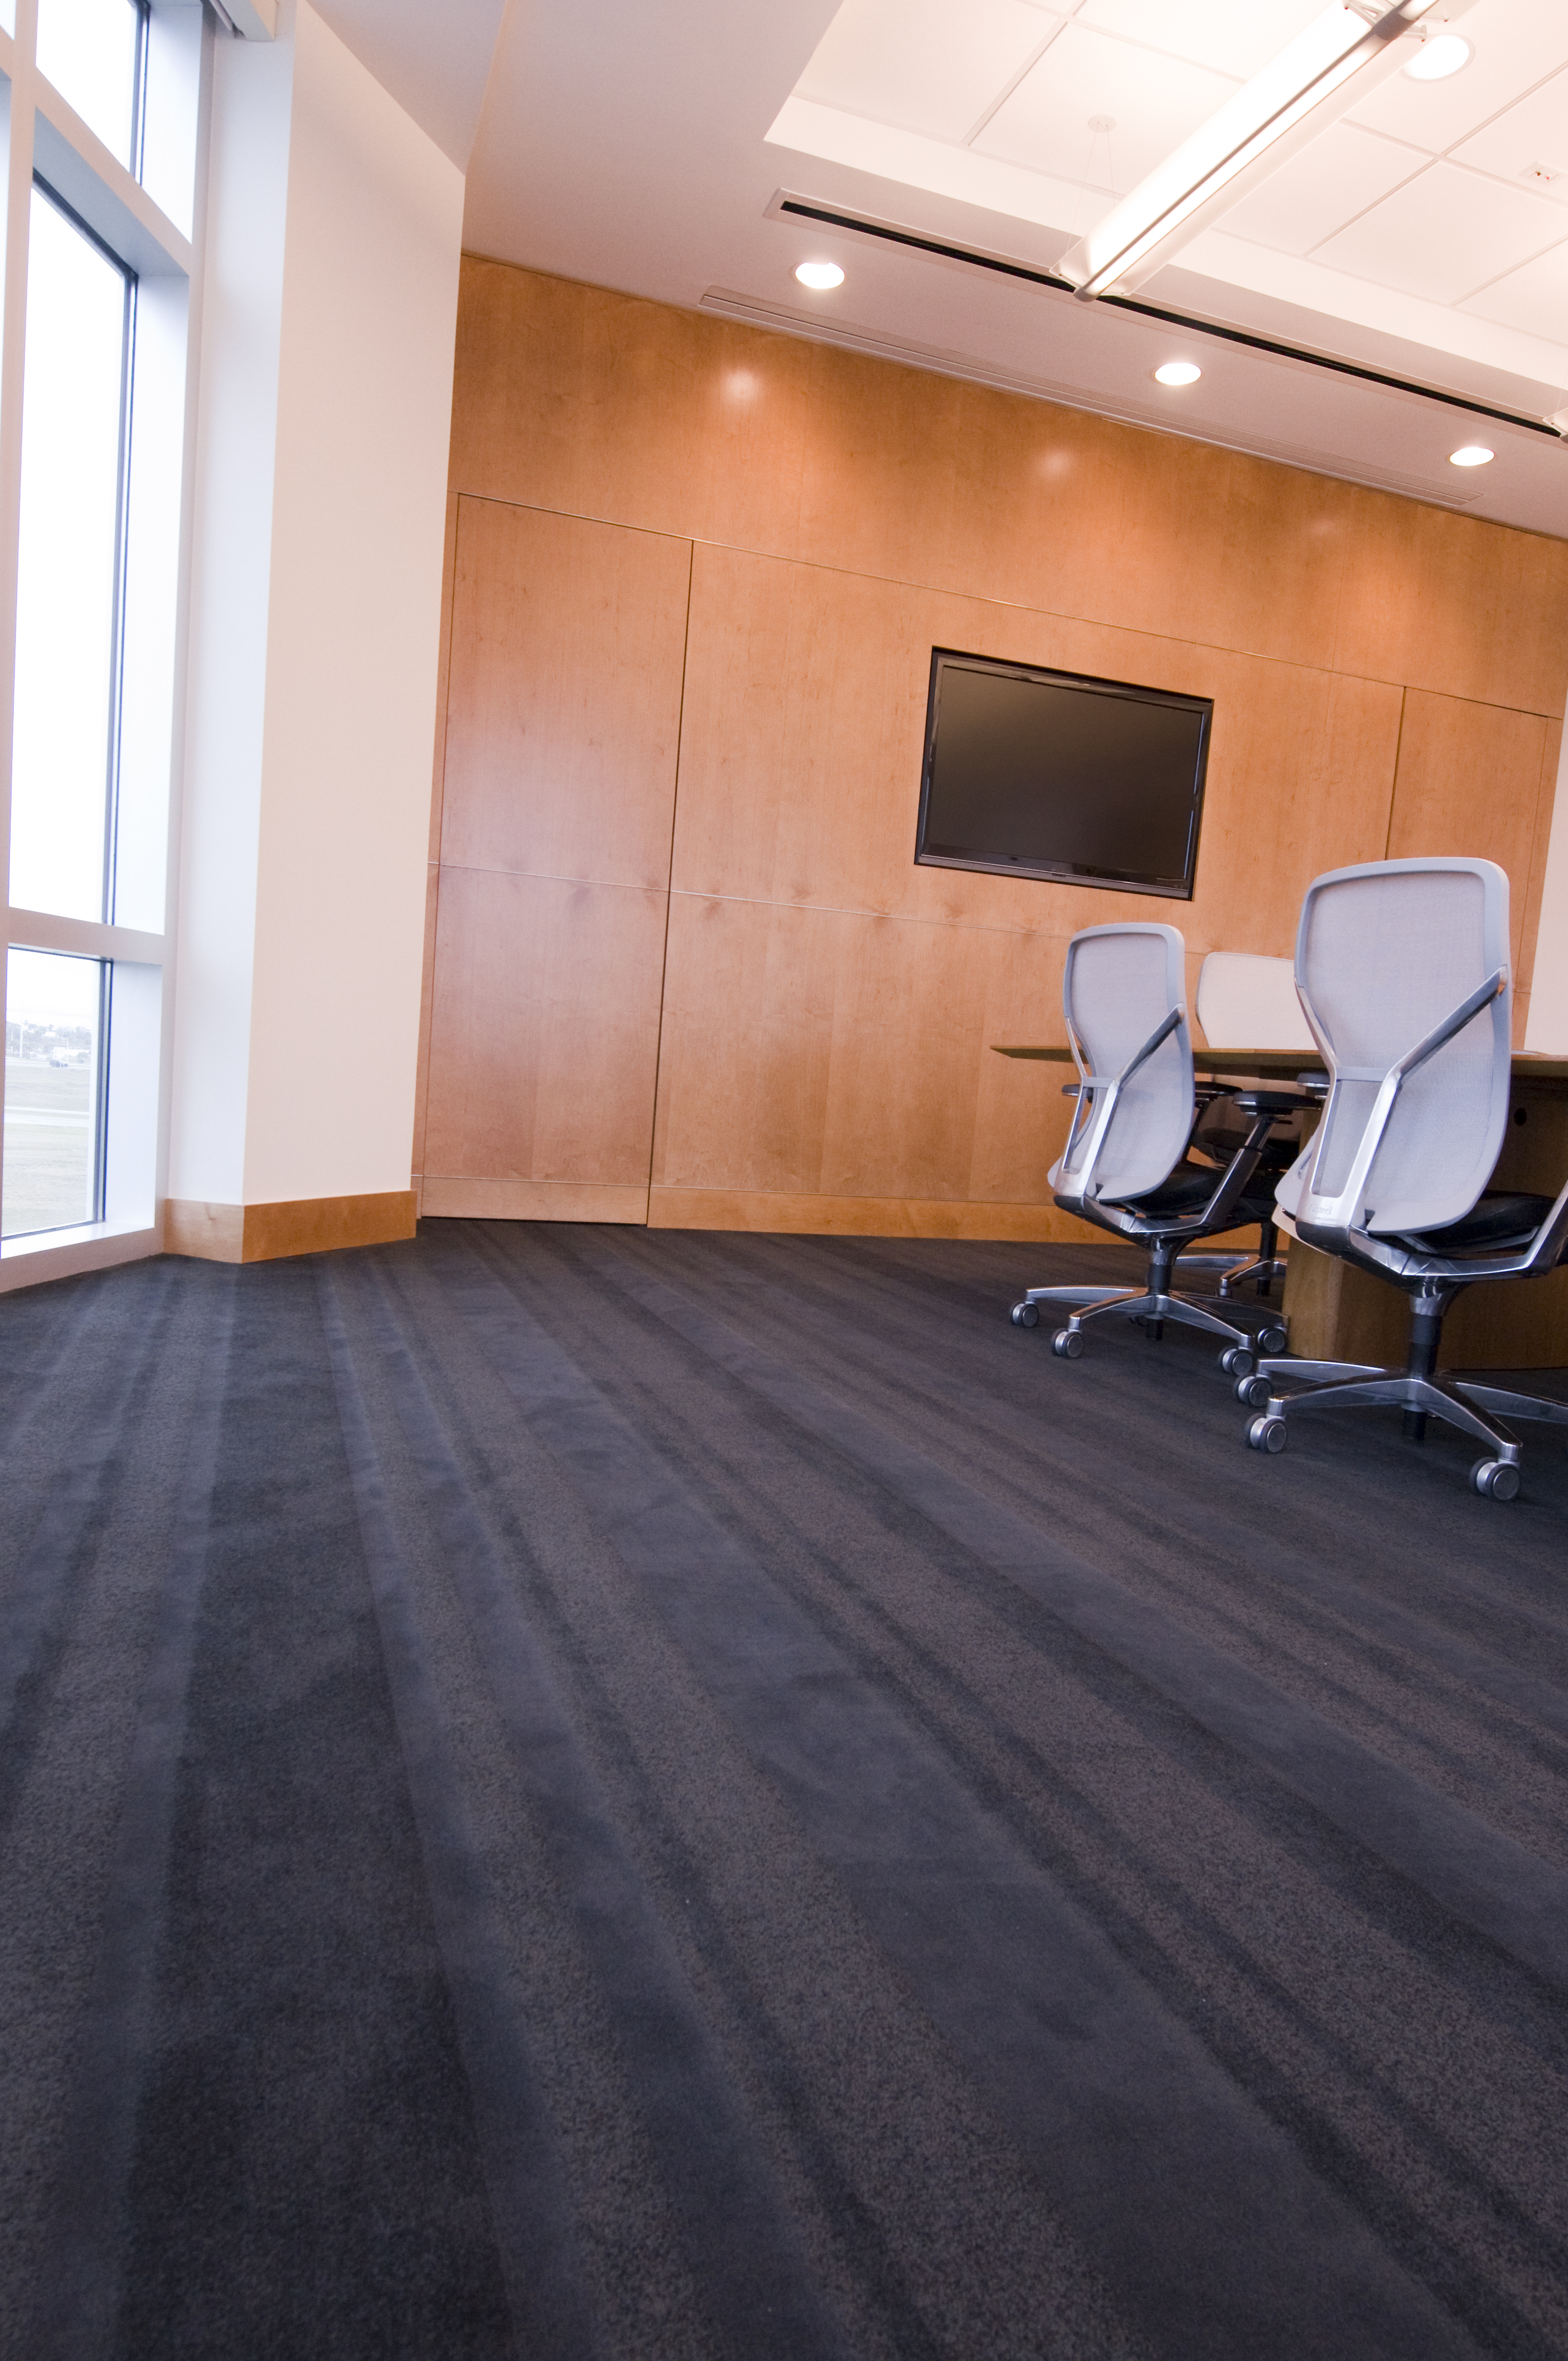 Commercial Carpet Cleaning For Appearance And Health